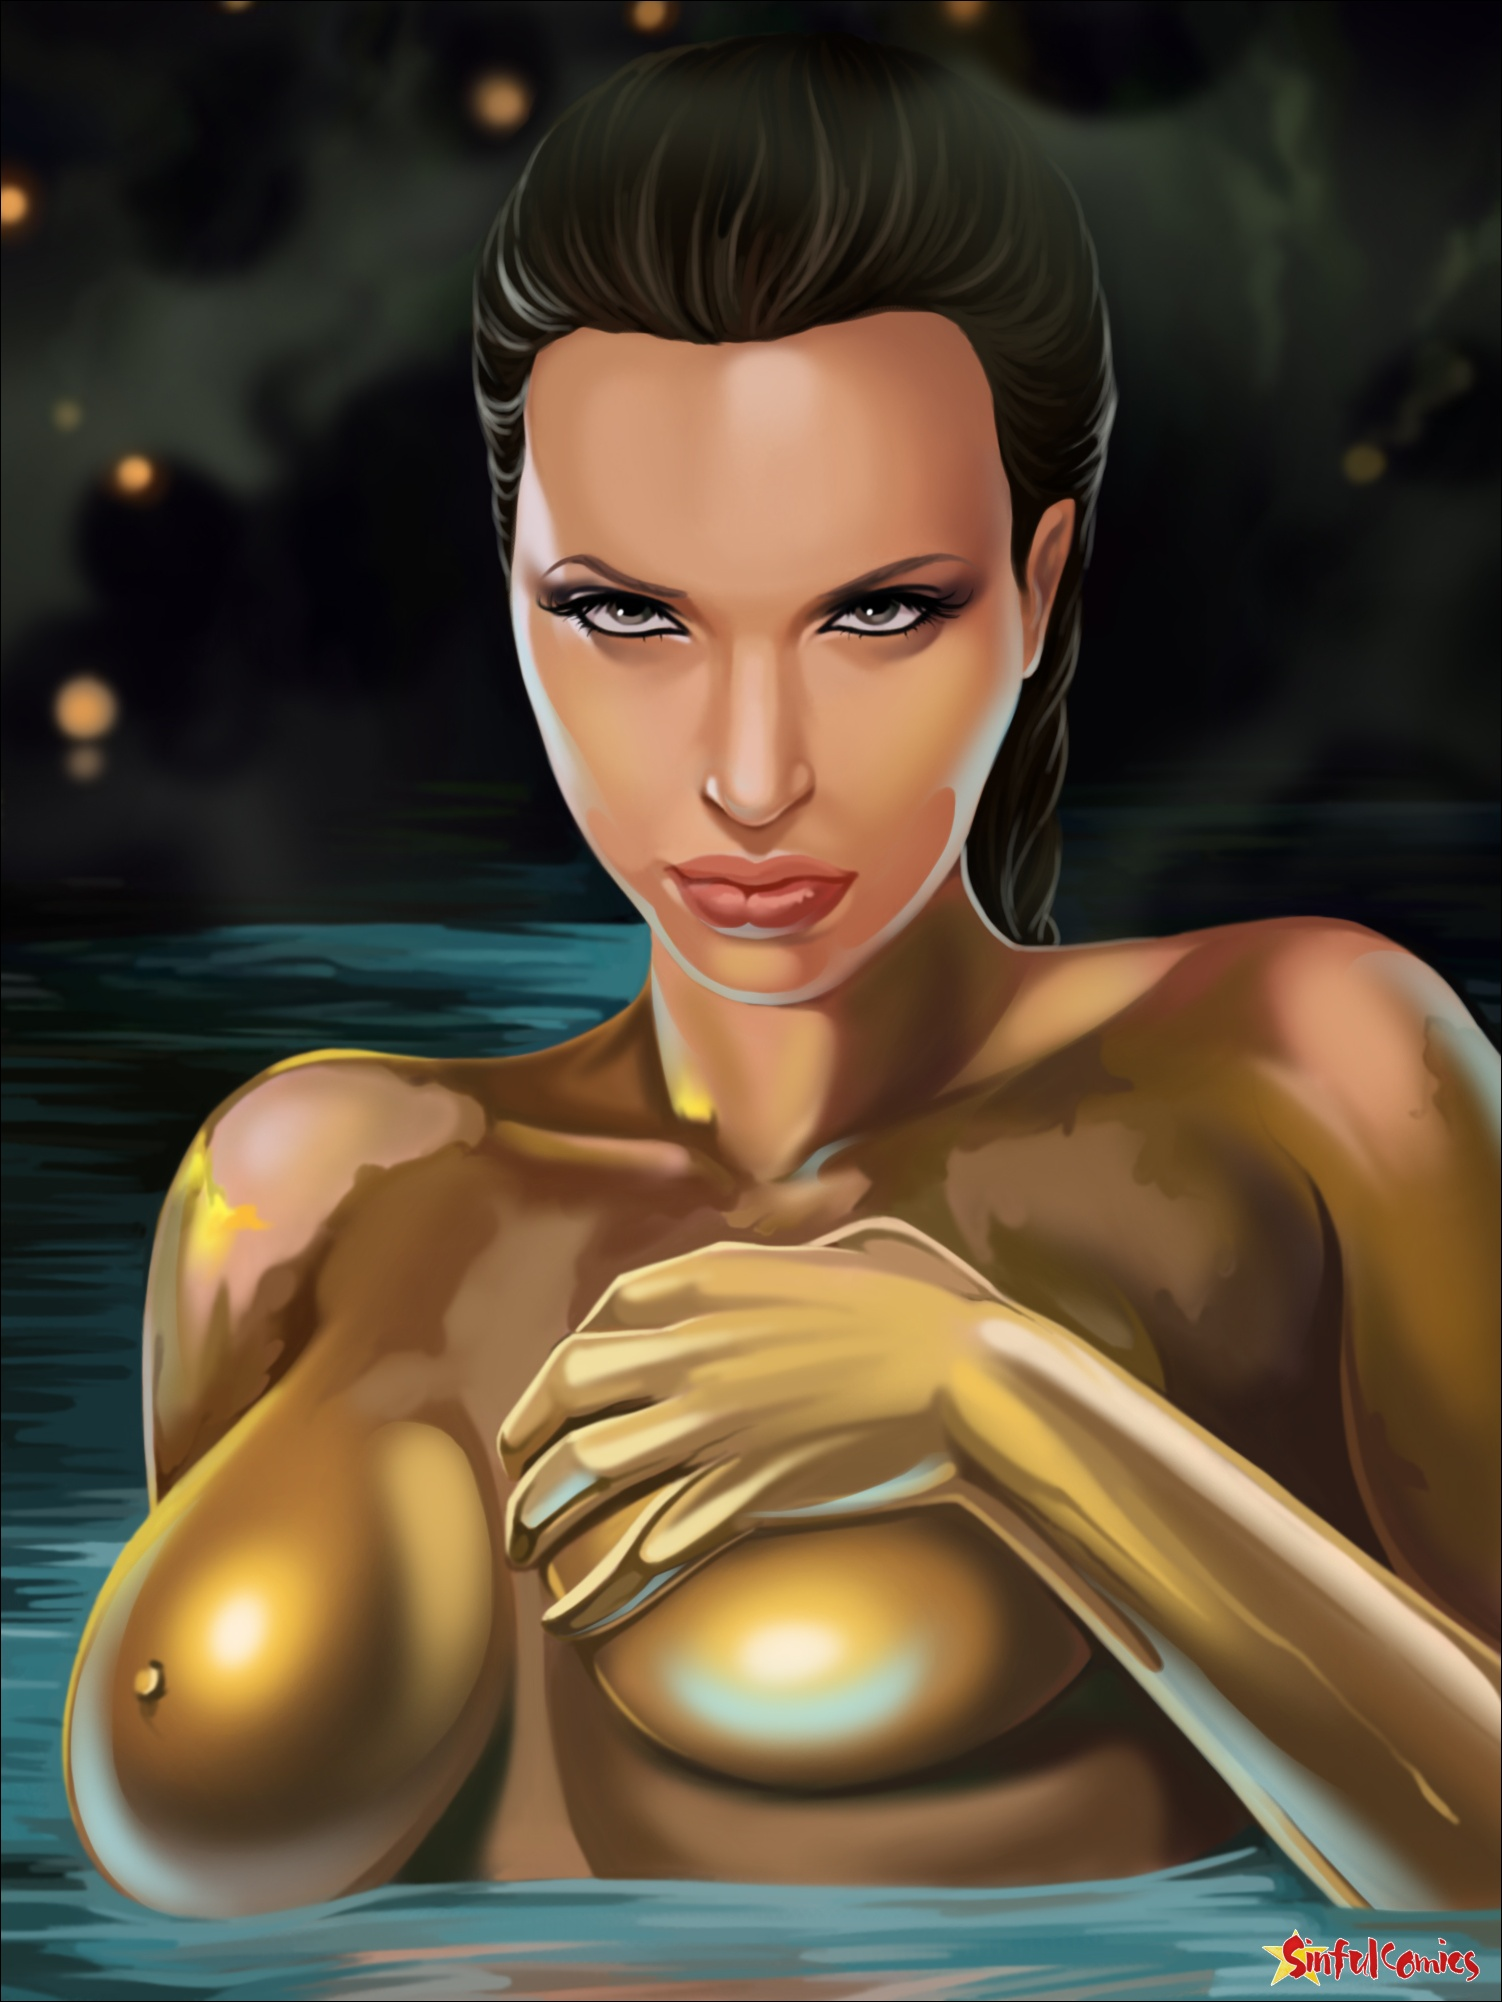 Angelina jolie hentai naked pictures